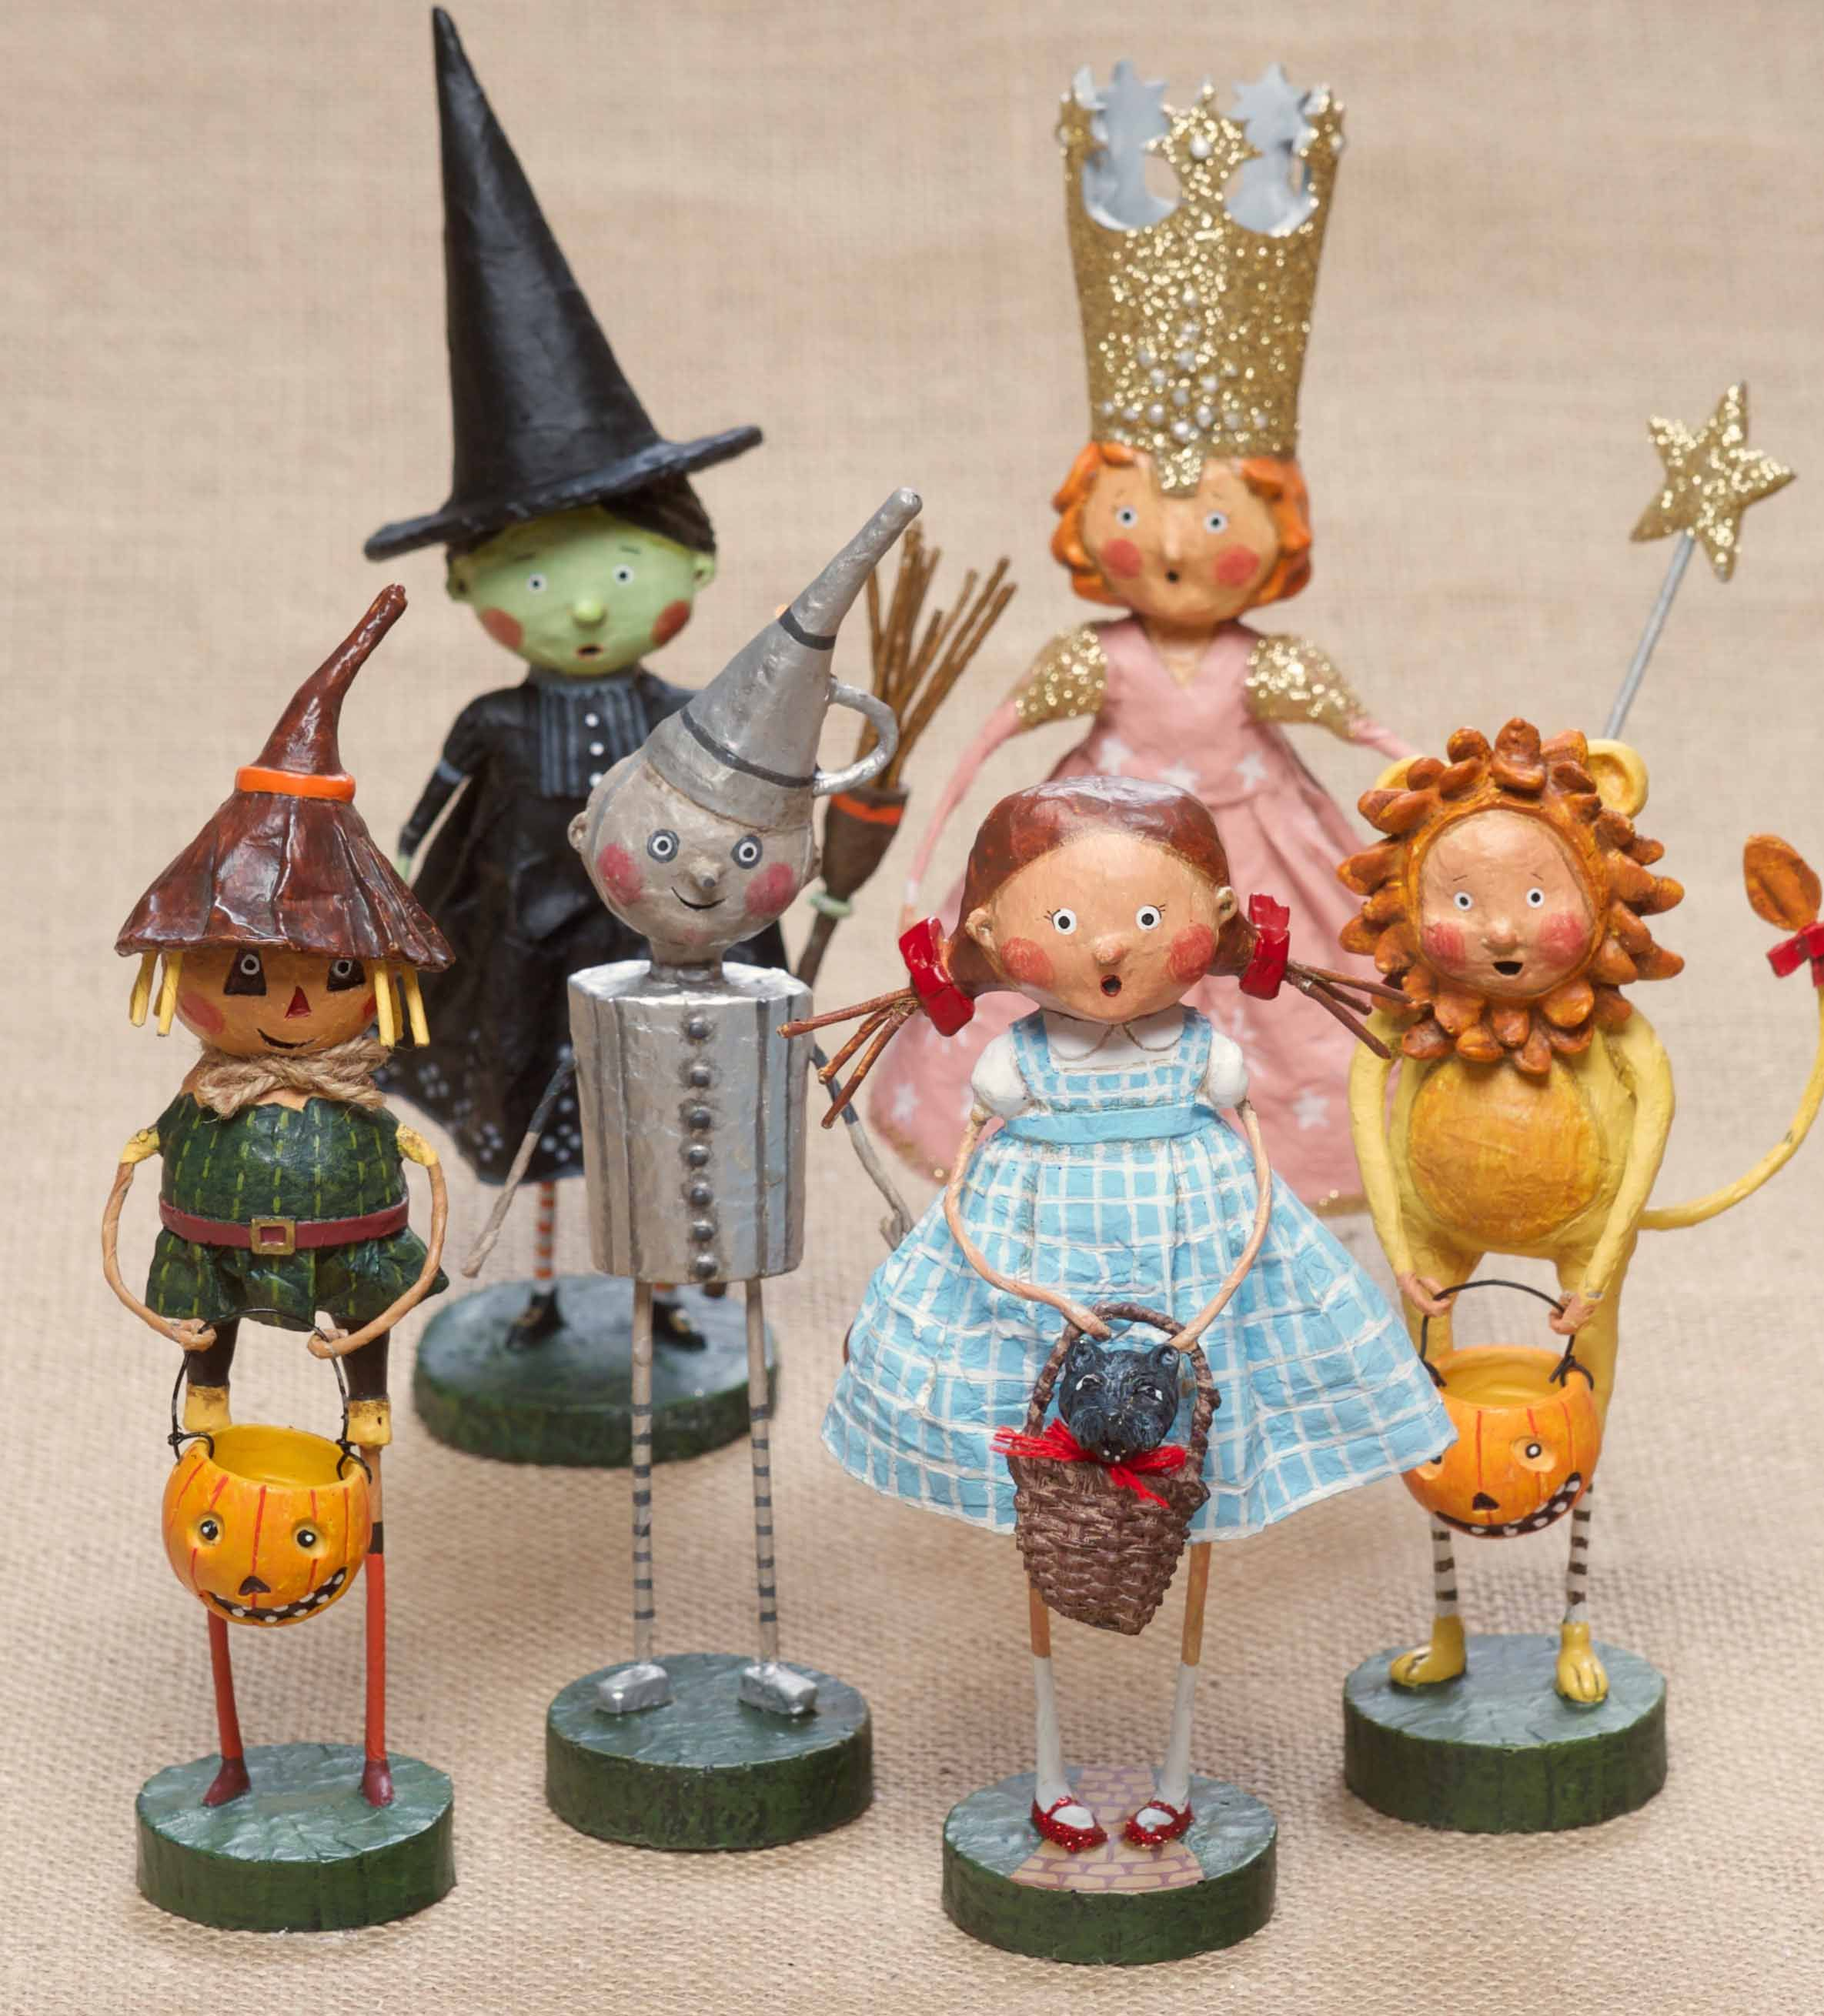 Wizard of Oz Collection by Lori Mitchell for ESC wwwescandcompany - Wizard Of Oz Halloween Decorations